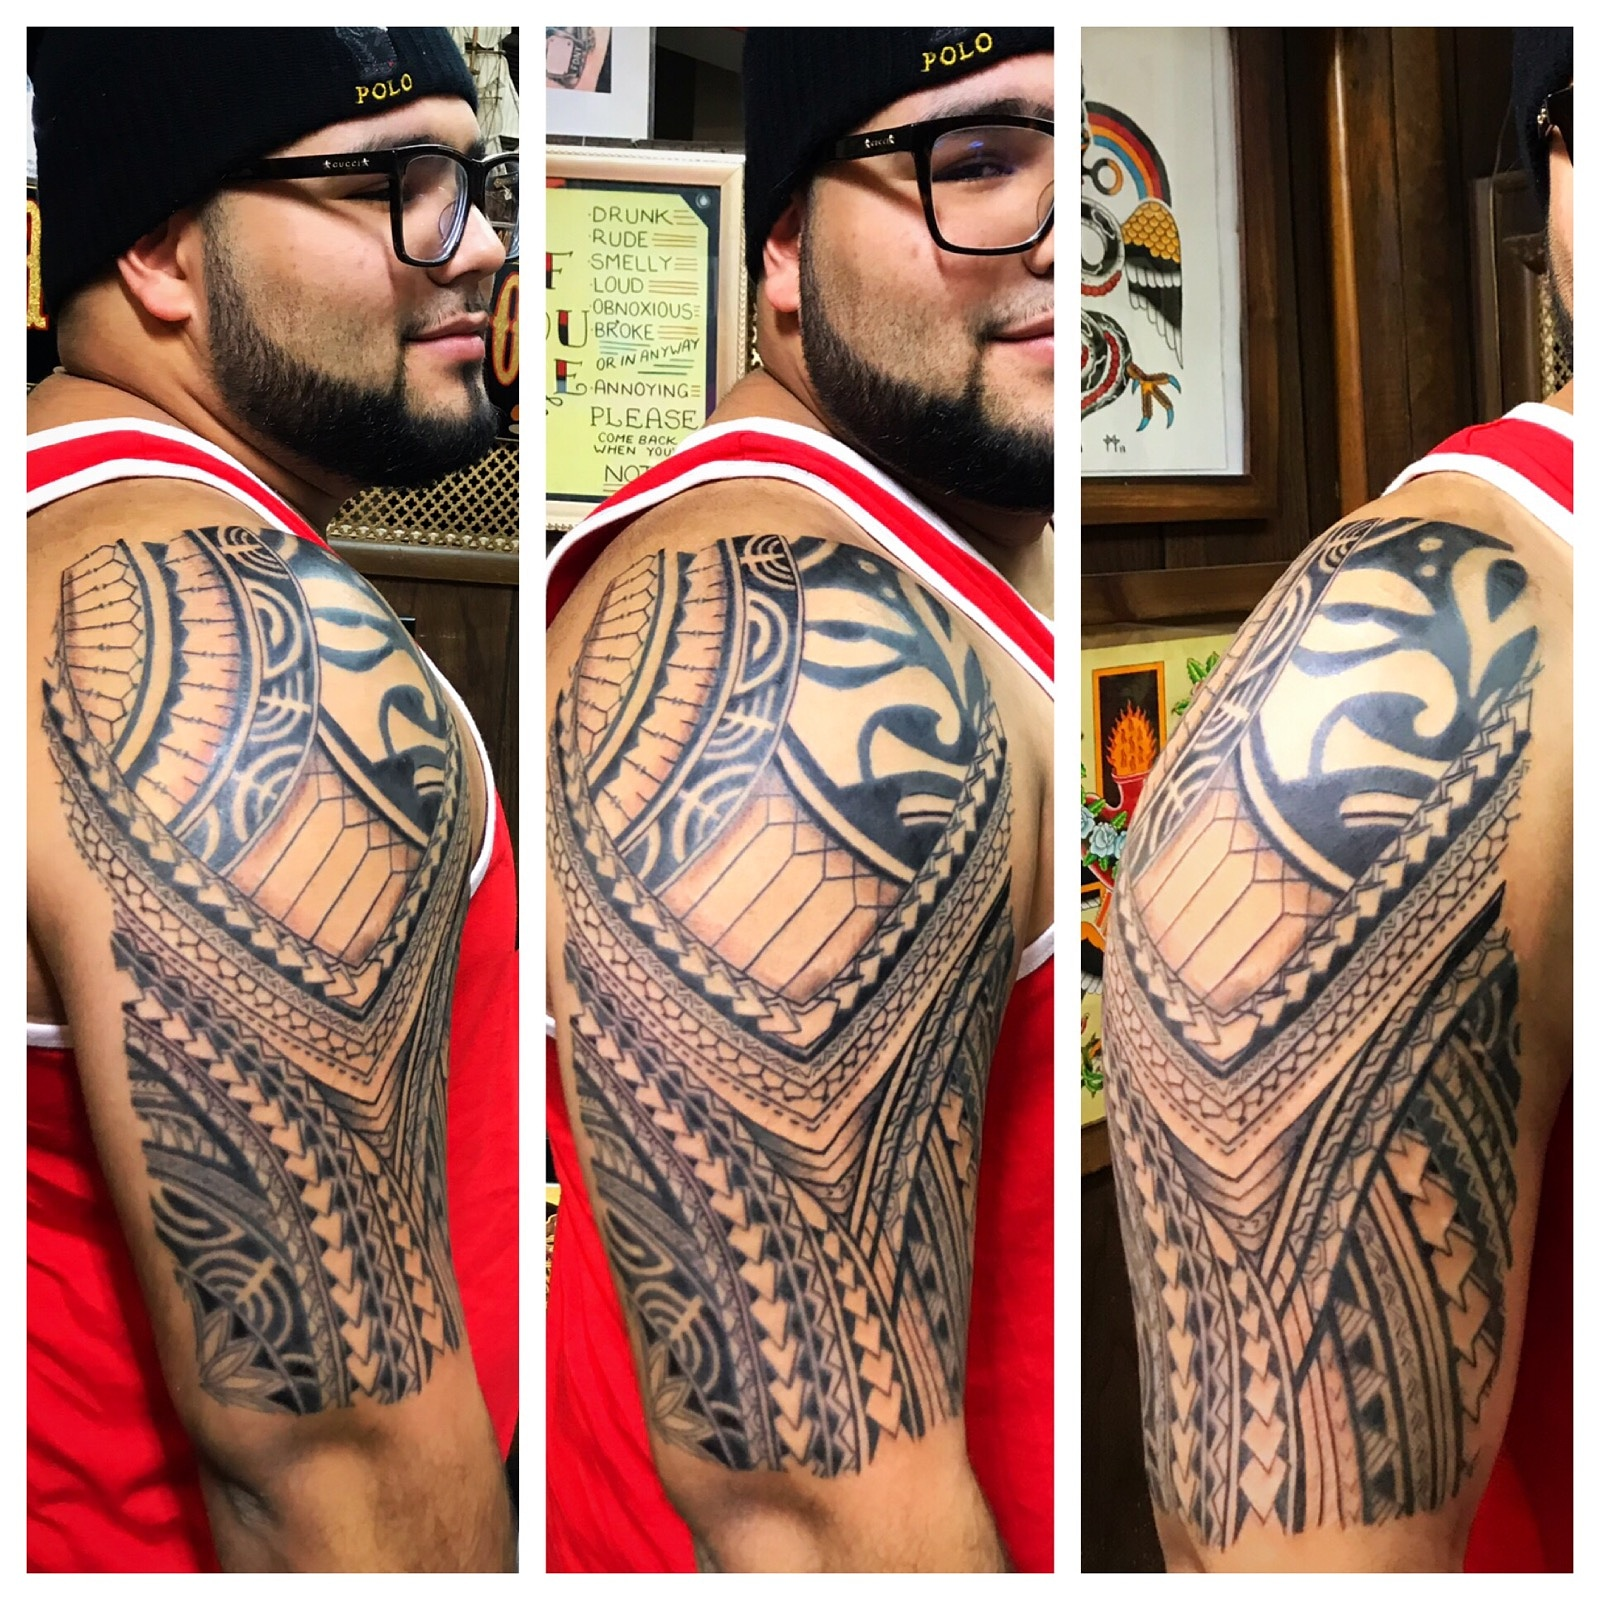 Polynesian Tattoos In NYC The Red Parlou